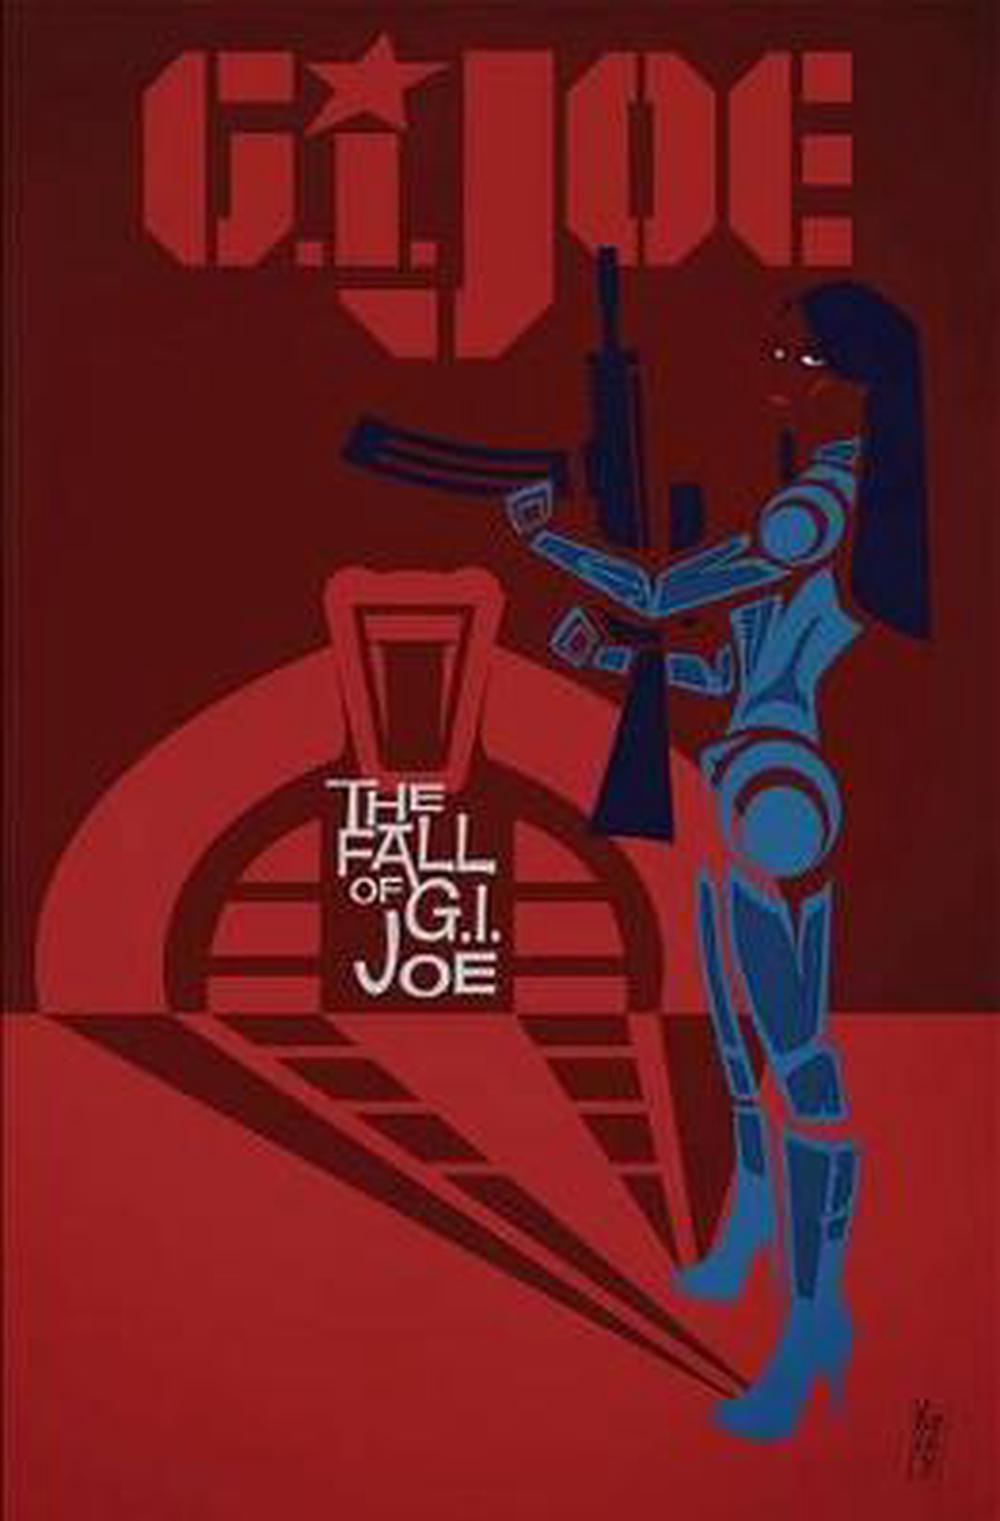 G.i. Joe the Fall of G.i. Joe Volume 1